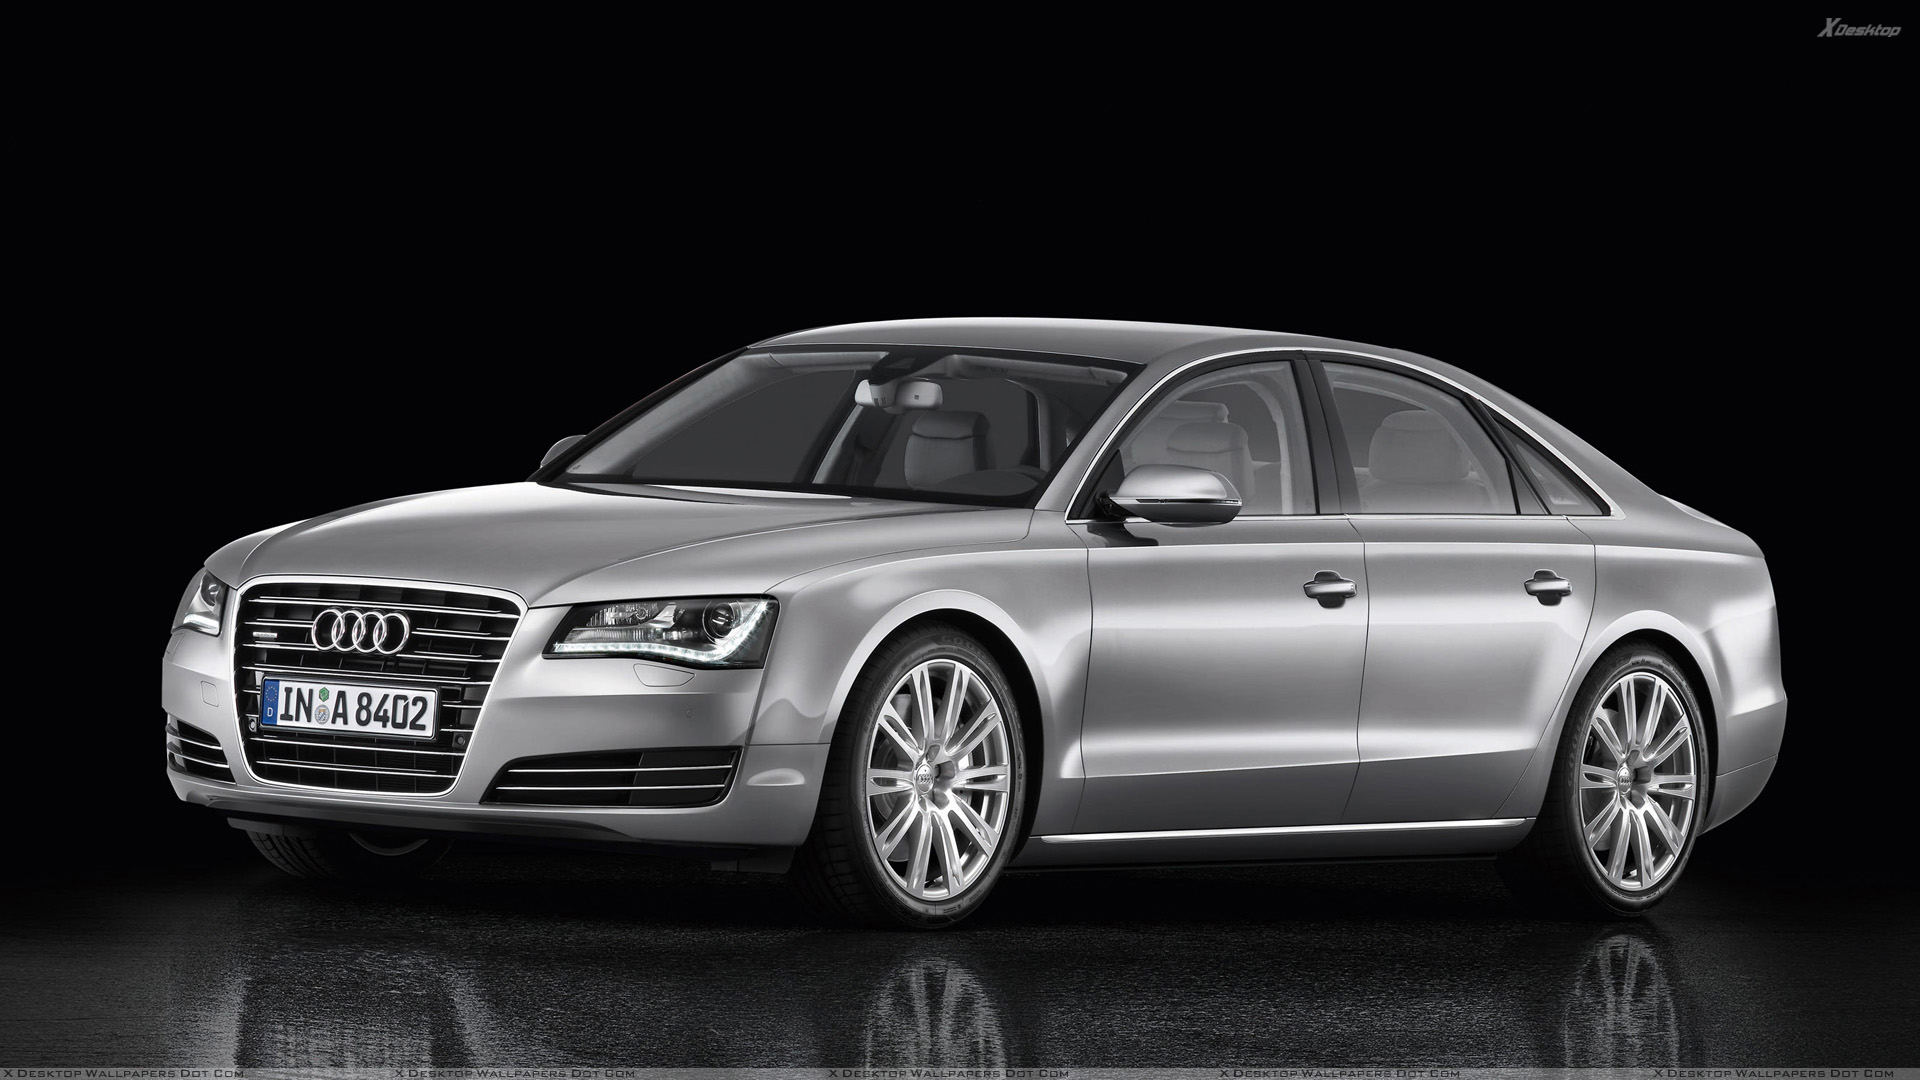 Audi A8 Wallpapers Photos Images In Hd